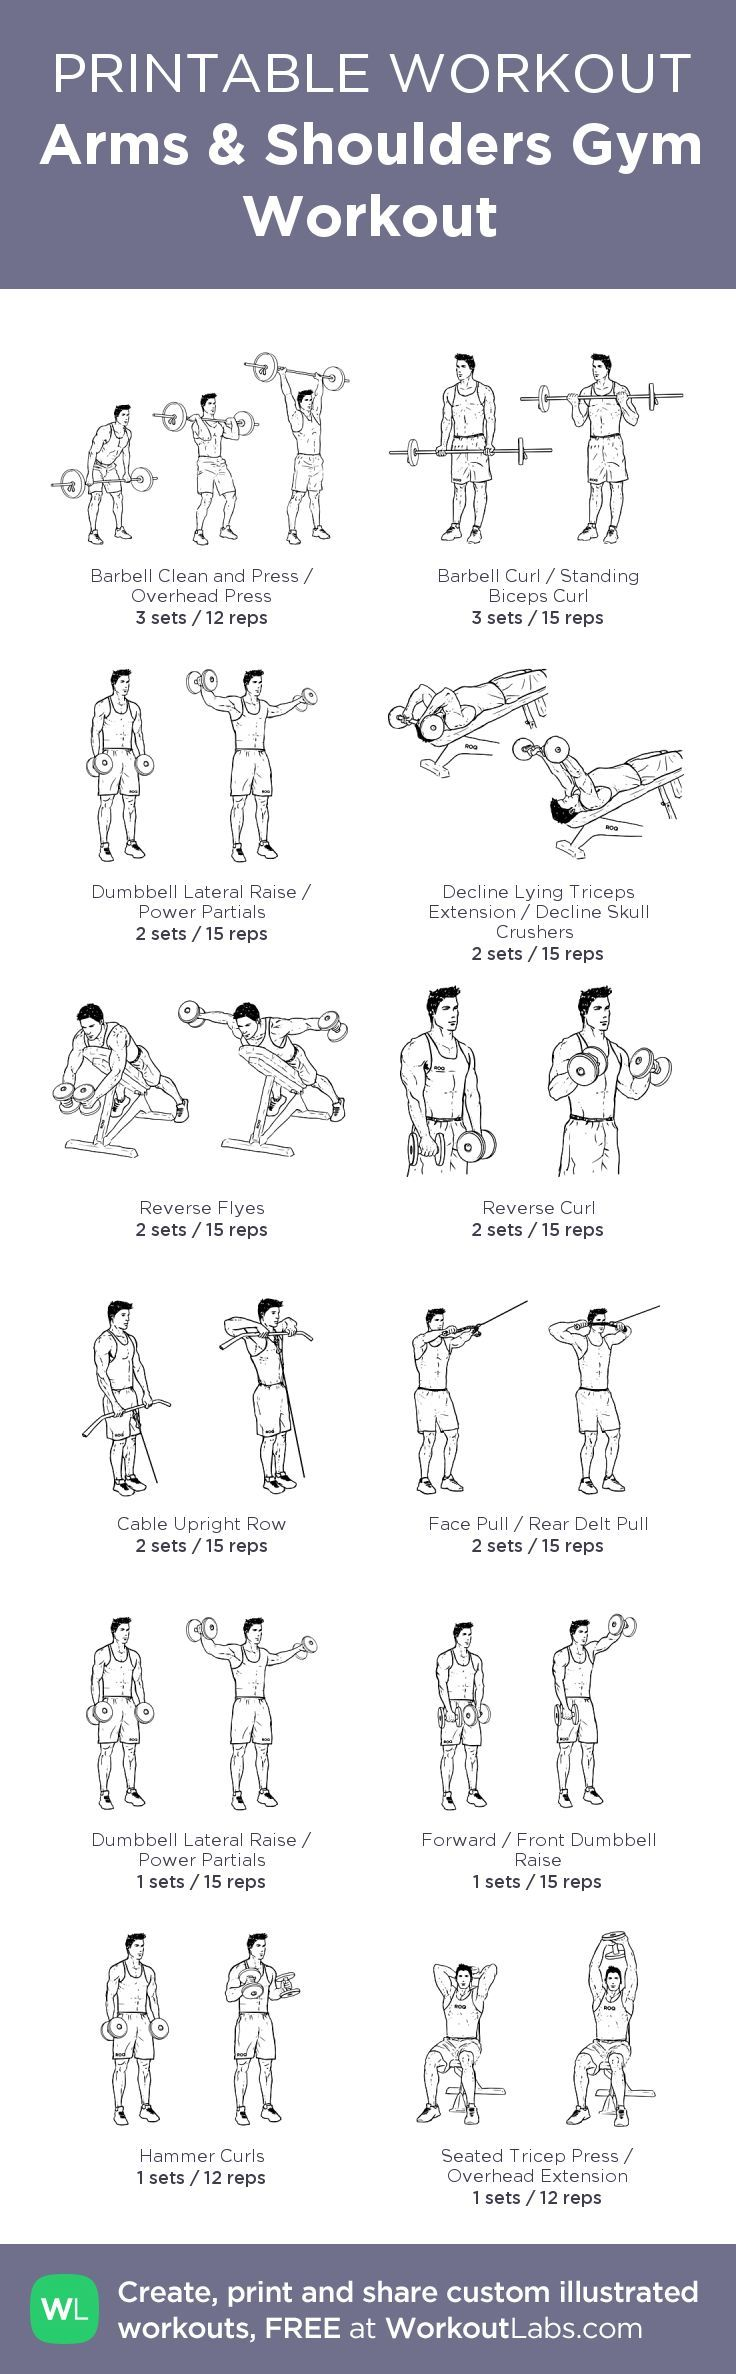 Arms & Shoulders Gym Workout – my custom workout created at WorkoutLabs.com • Click through to download as printable PDF! #customworkout